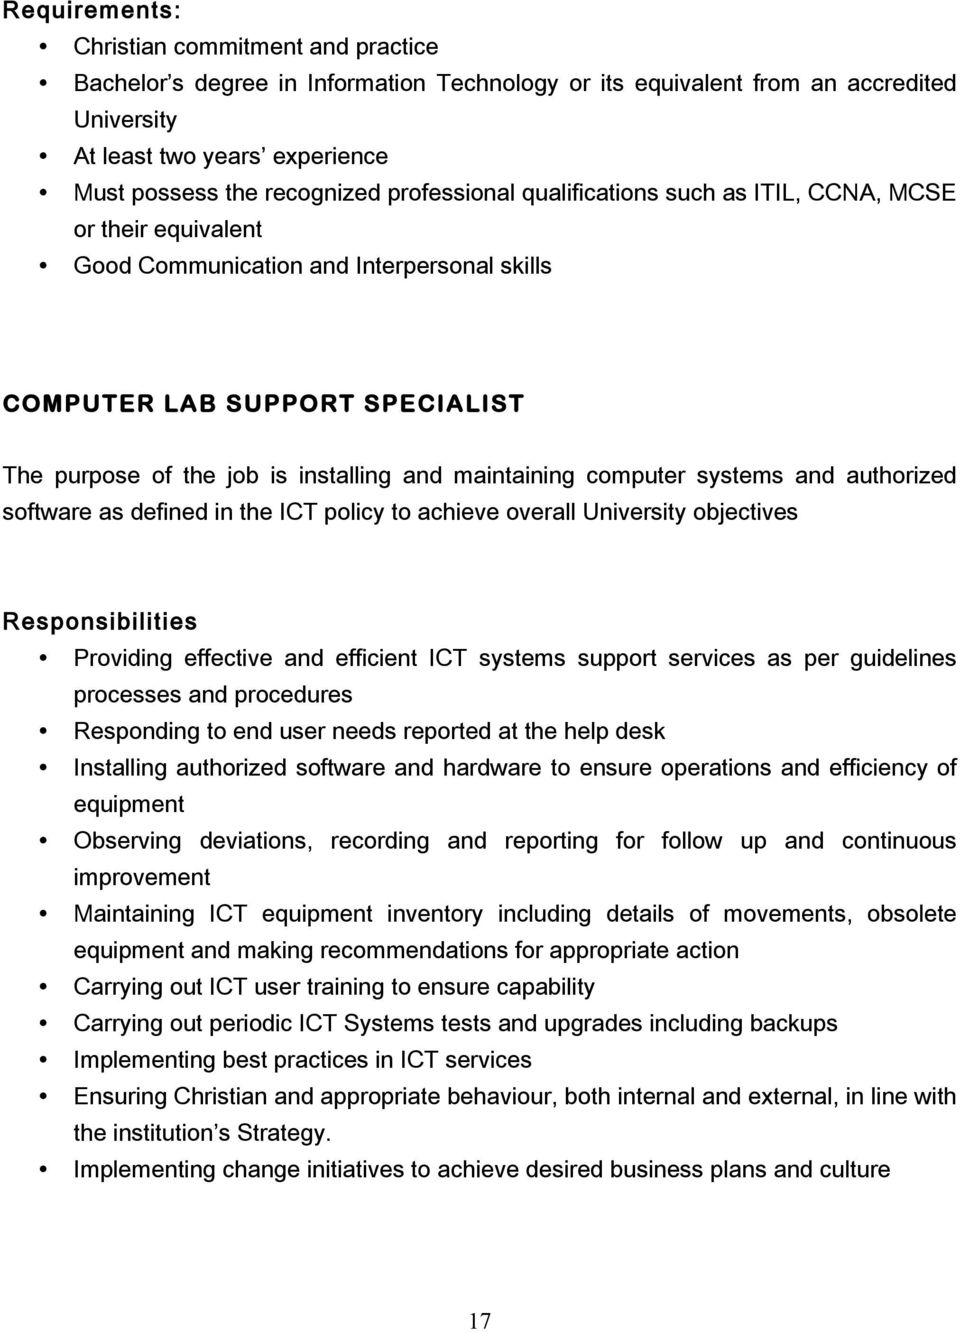 software as defined in the ICT policy to achieve overall University objectives Responsibilities Providing effective and efficient ICT systems support services as per guidelines processes and